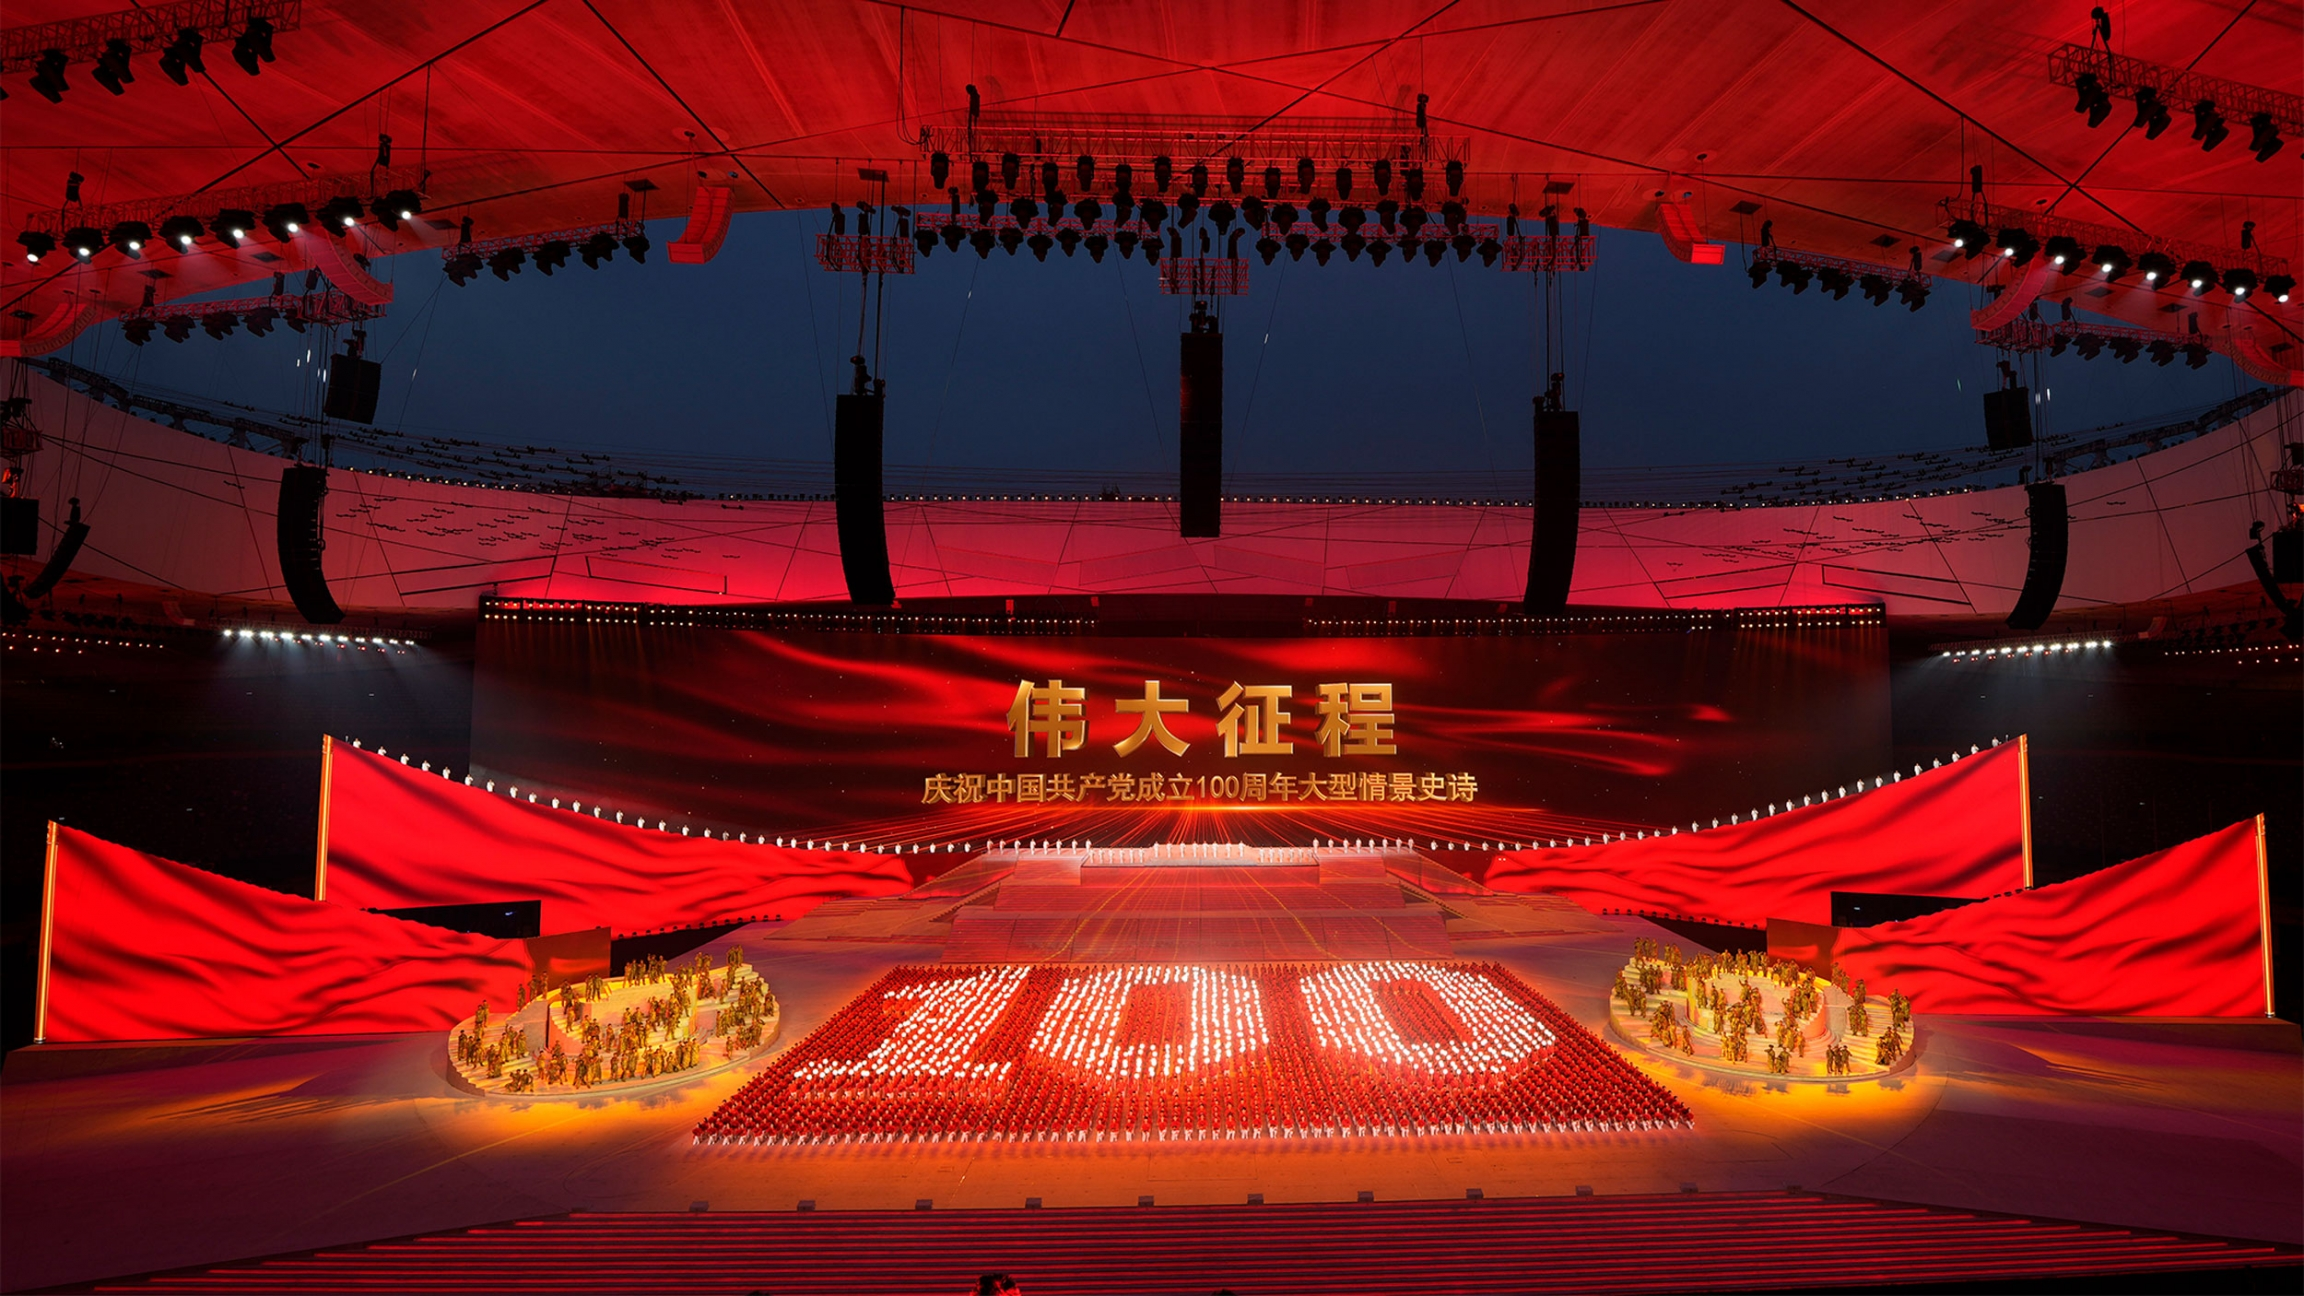 Performers form a yellow number 100 at a gala show full of red ahead of the 100th anniversary of the founding of the Chinese Communist Party in Beijing